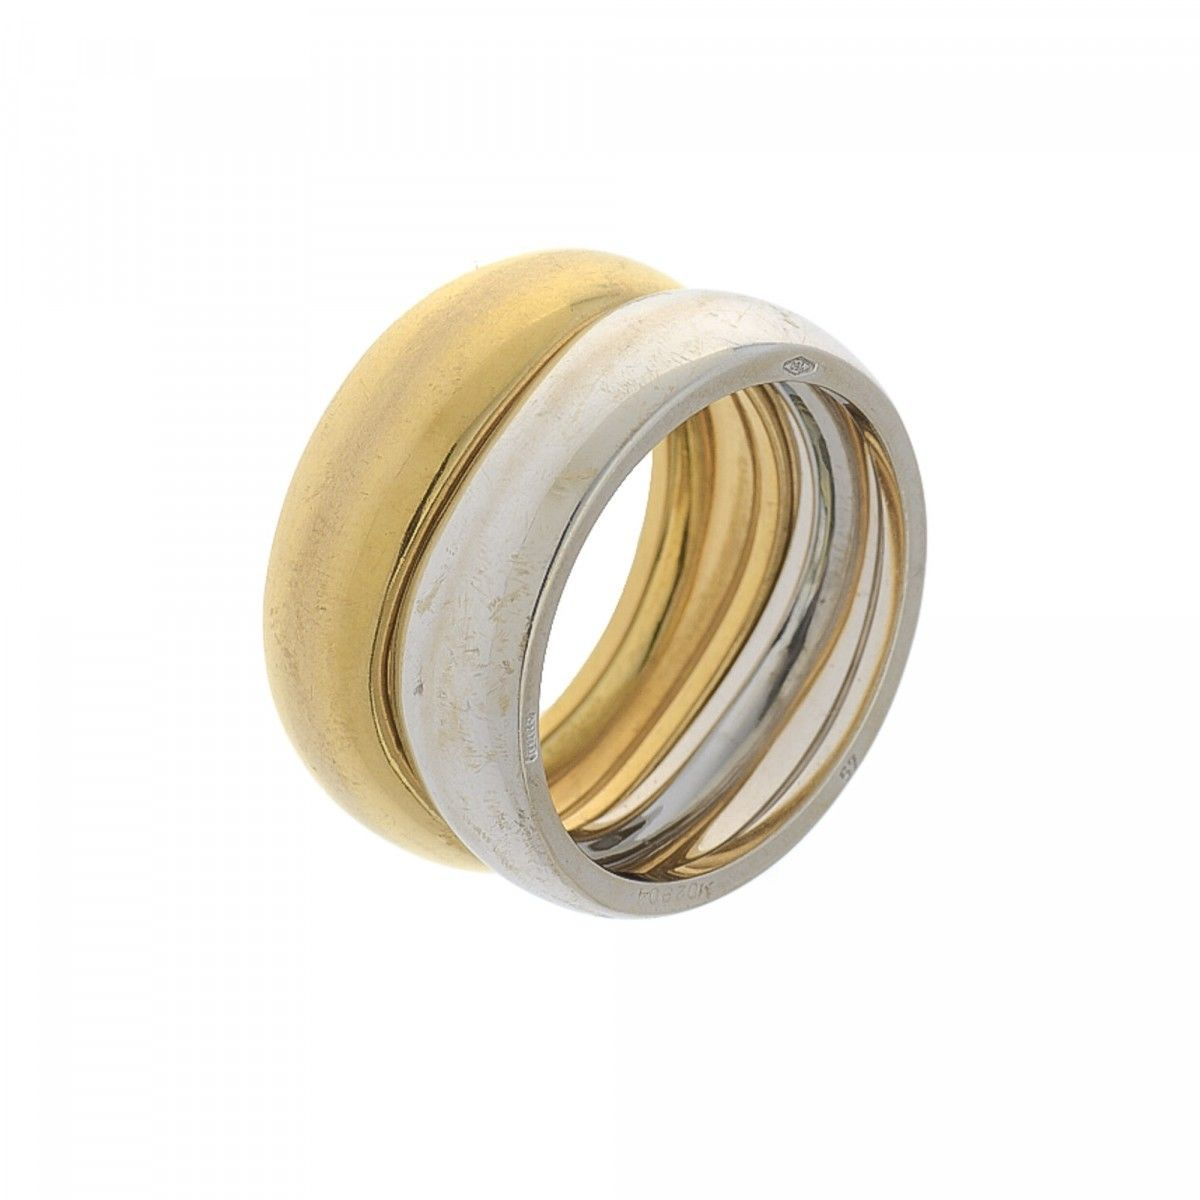 cartier double stack wave bands ring us 825 fr 57 18k gold lxrandco preowned luxury vintage